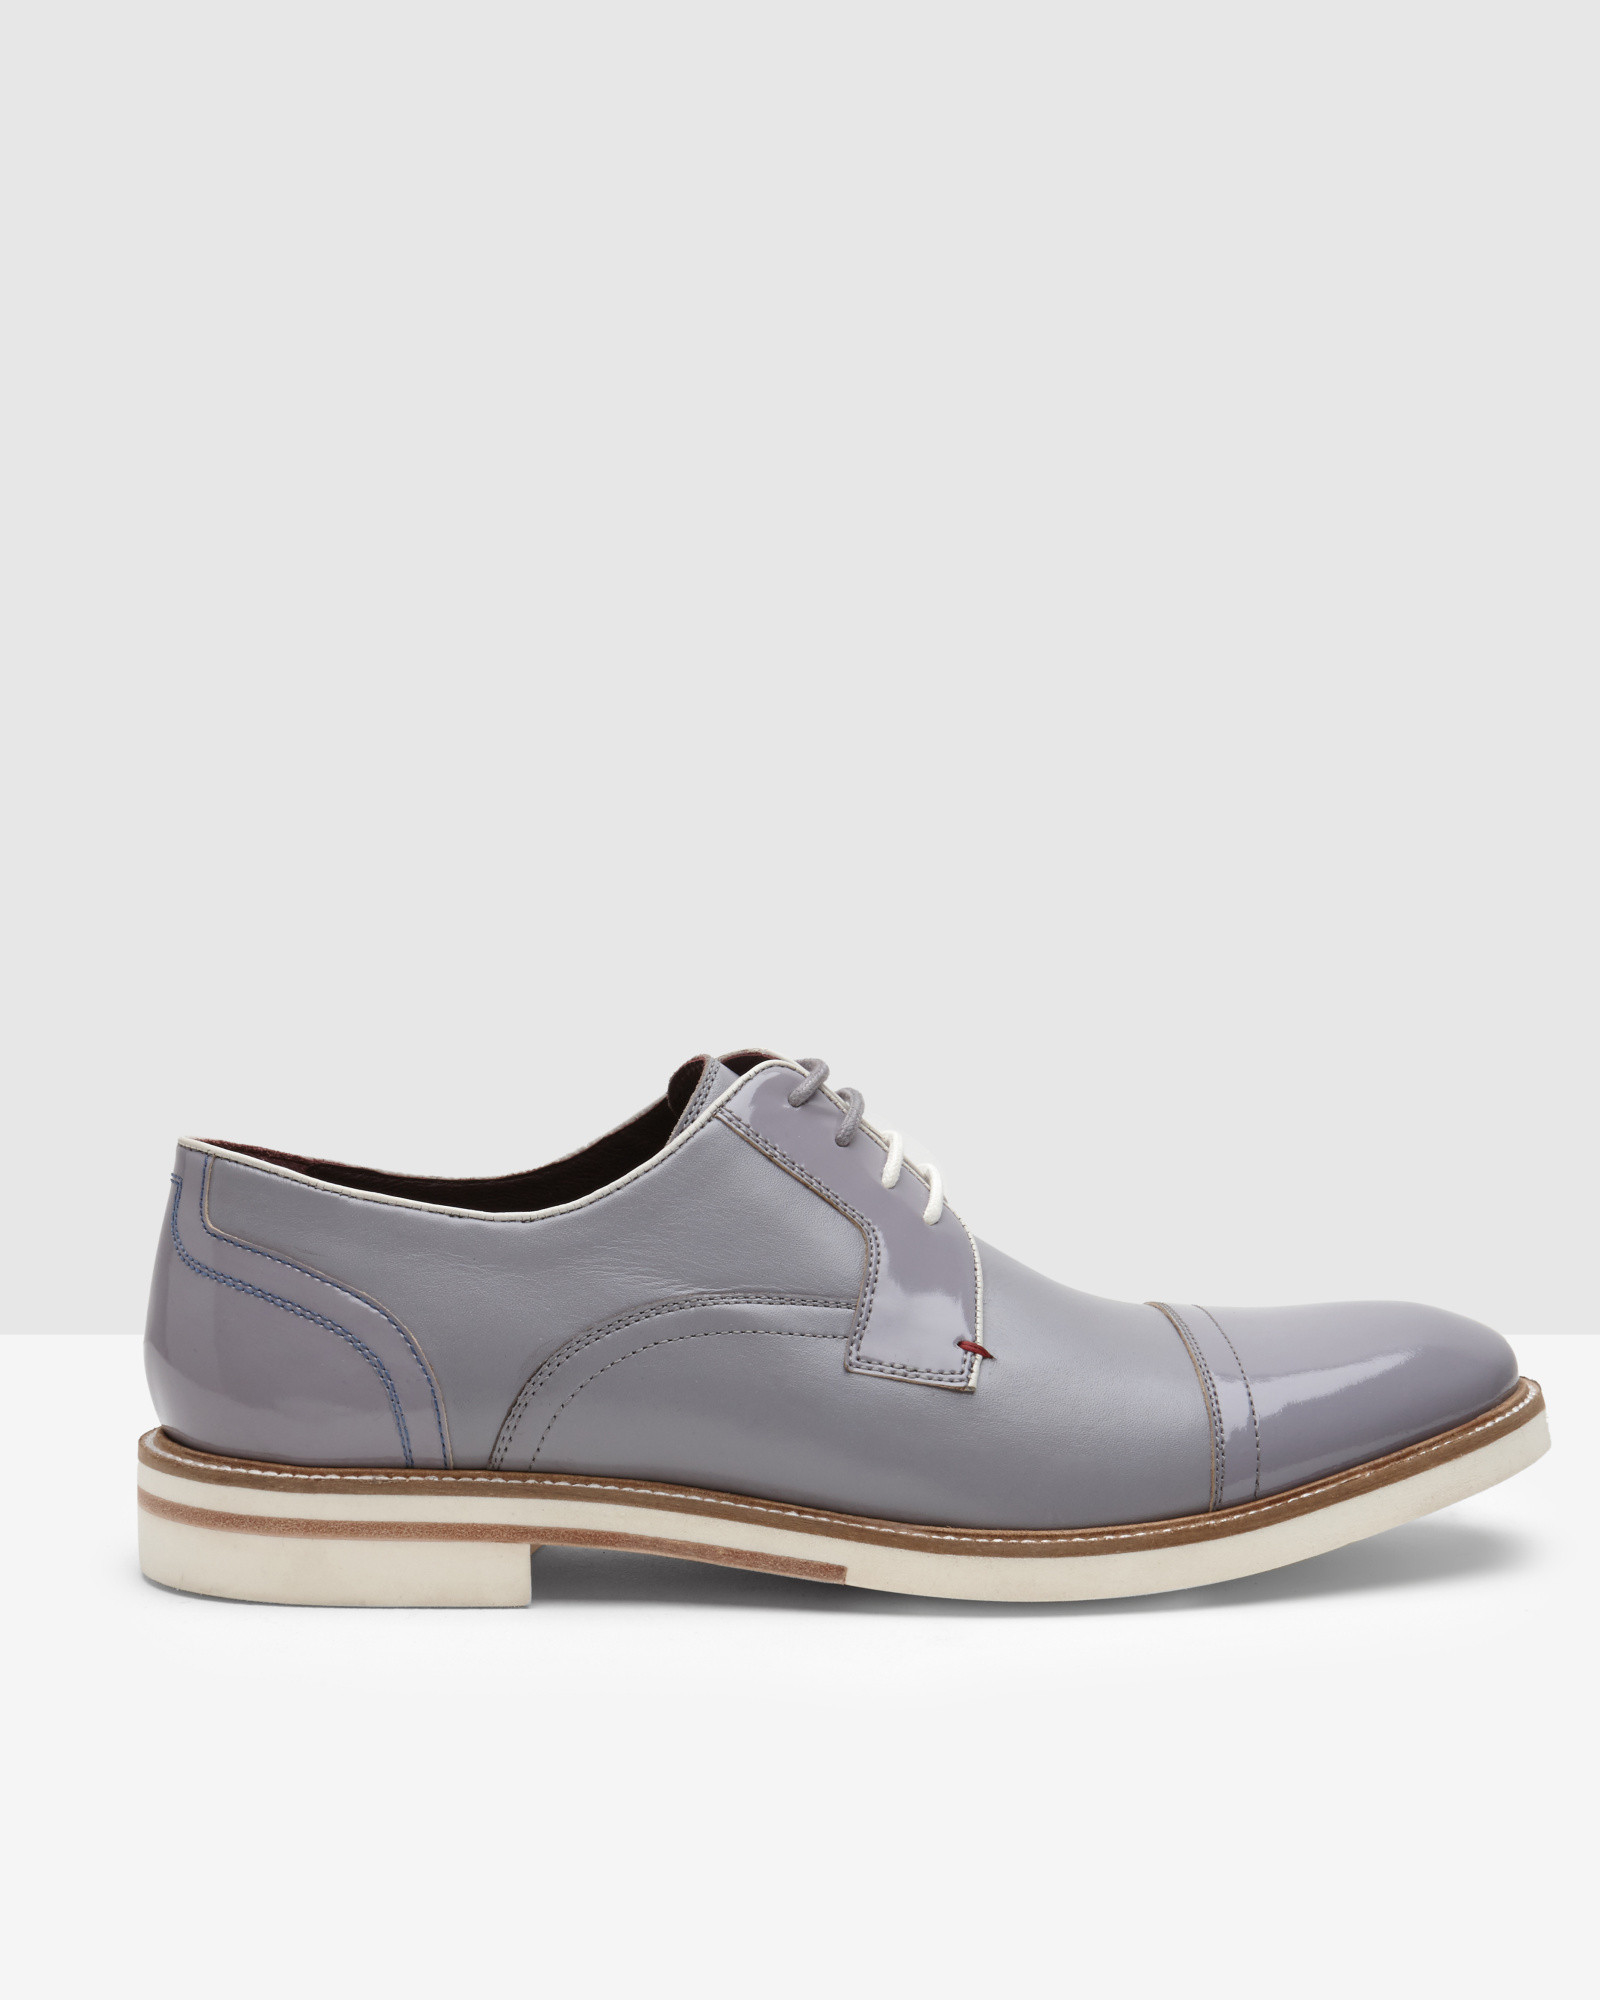 27fa5d81a Lyst - Ted Baker High-shine Leather Derby Brogues in Gray for Men